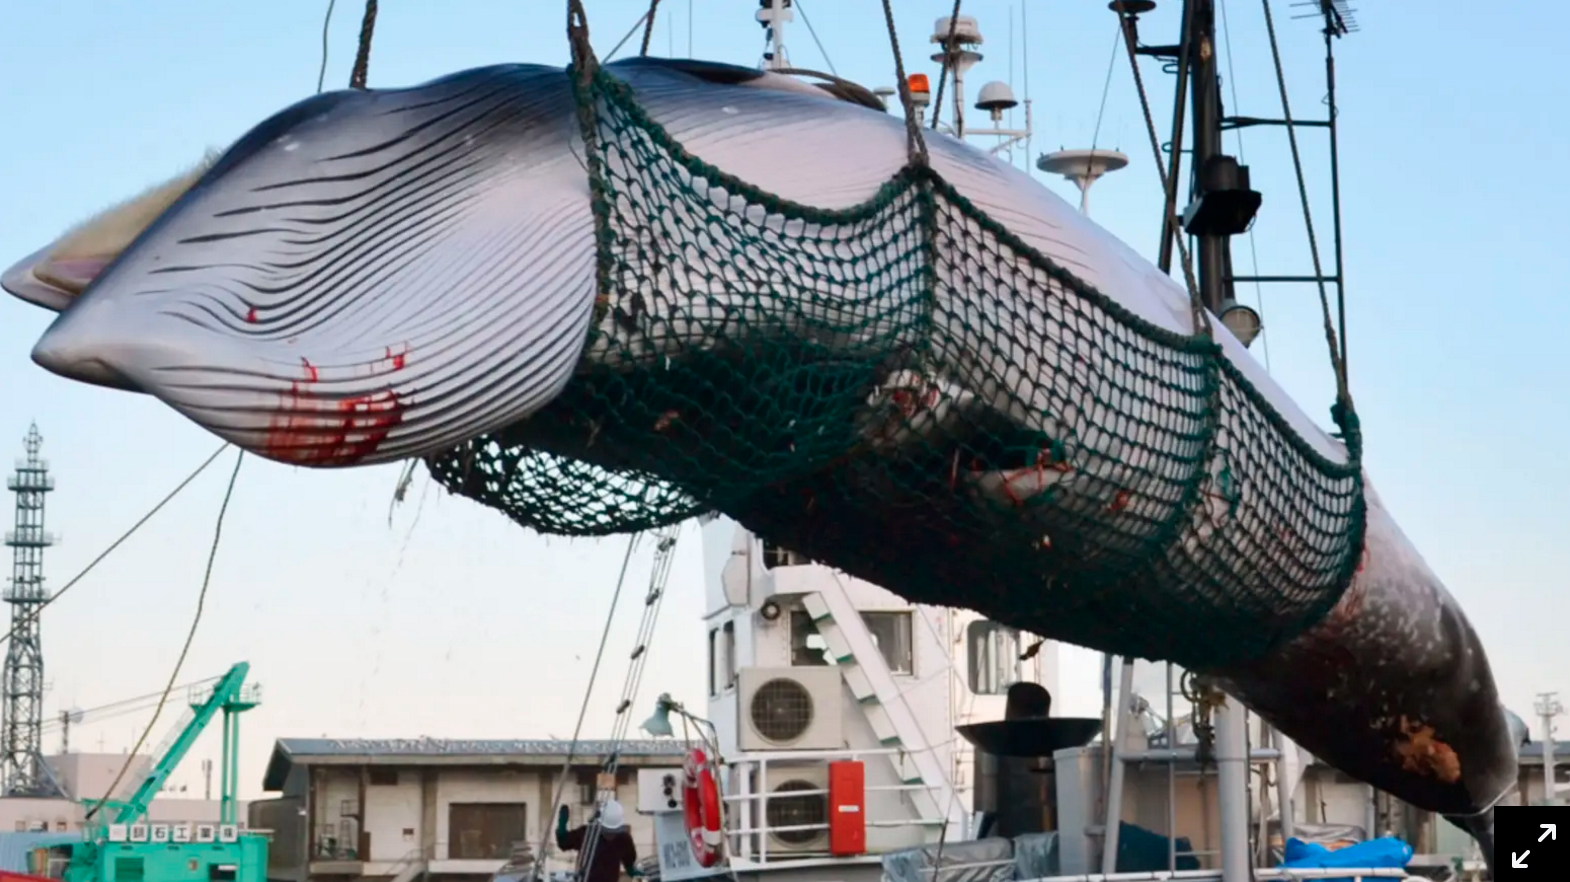 Japan Pulls Out of Intl. No-Whaling Agreement, Commercial Hunts to Commence in 2019